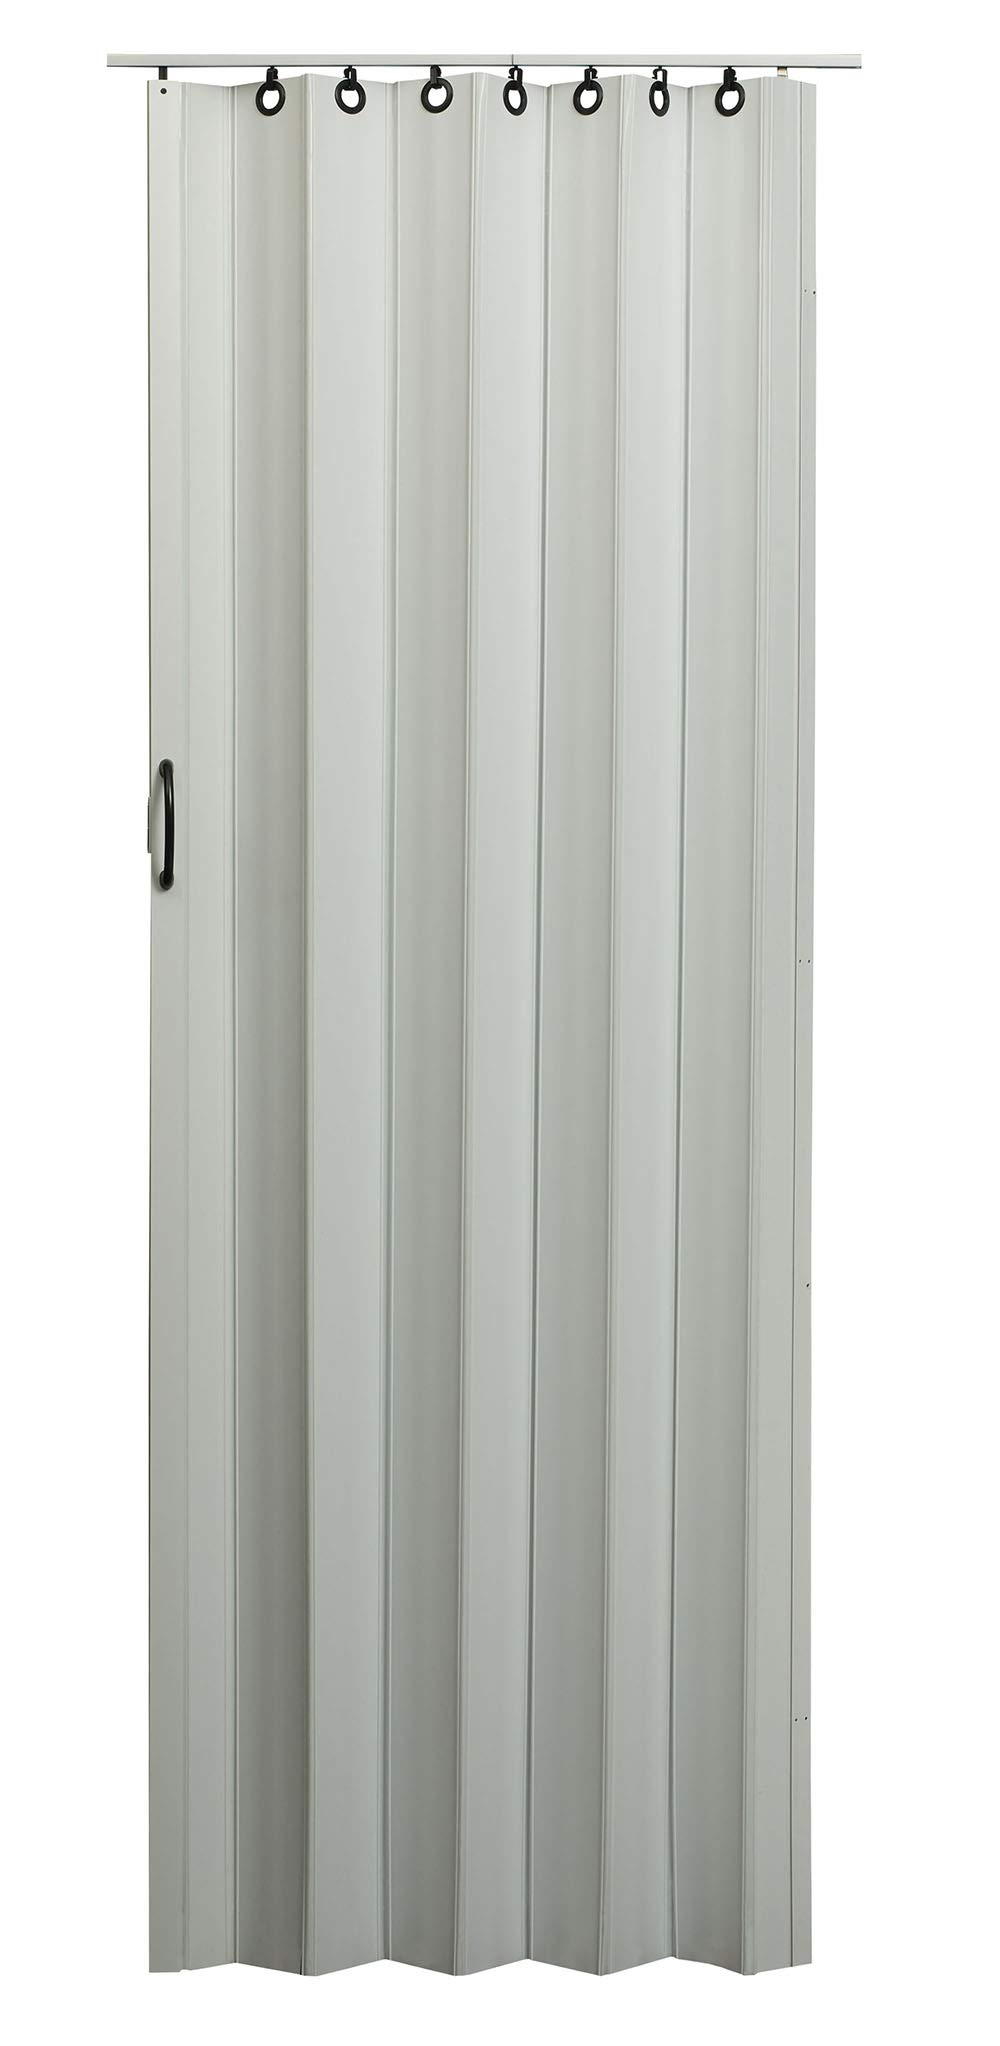 LTL Home Products NV3680H Nuevo Interior Accordion Folding Door, 36'' x 80'', White